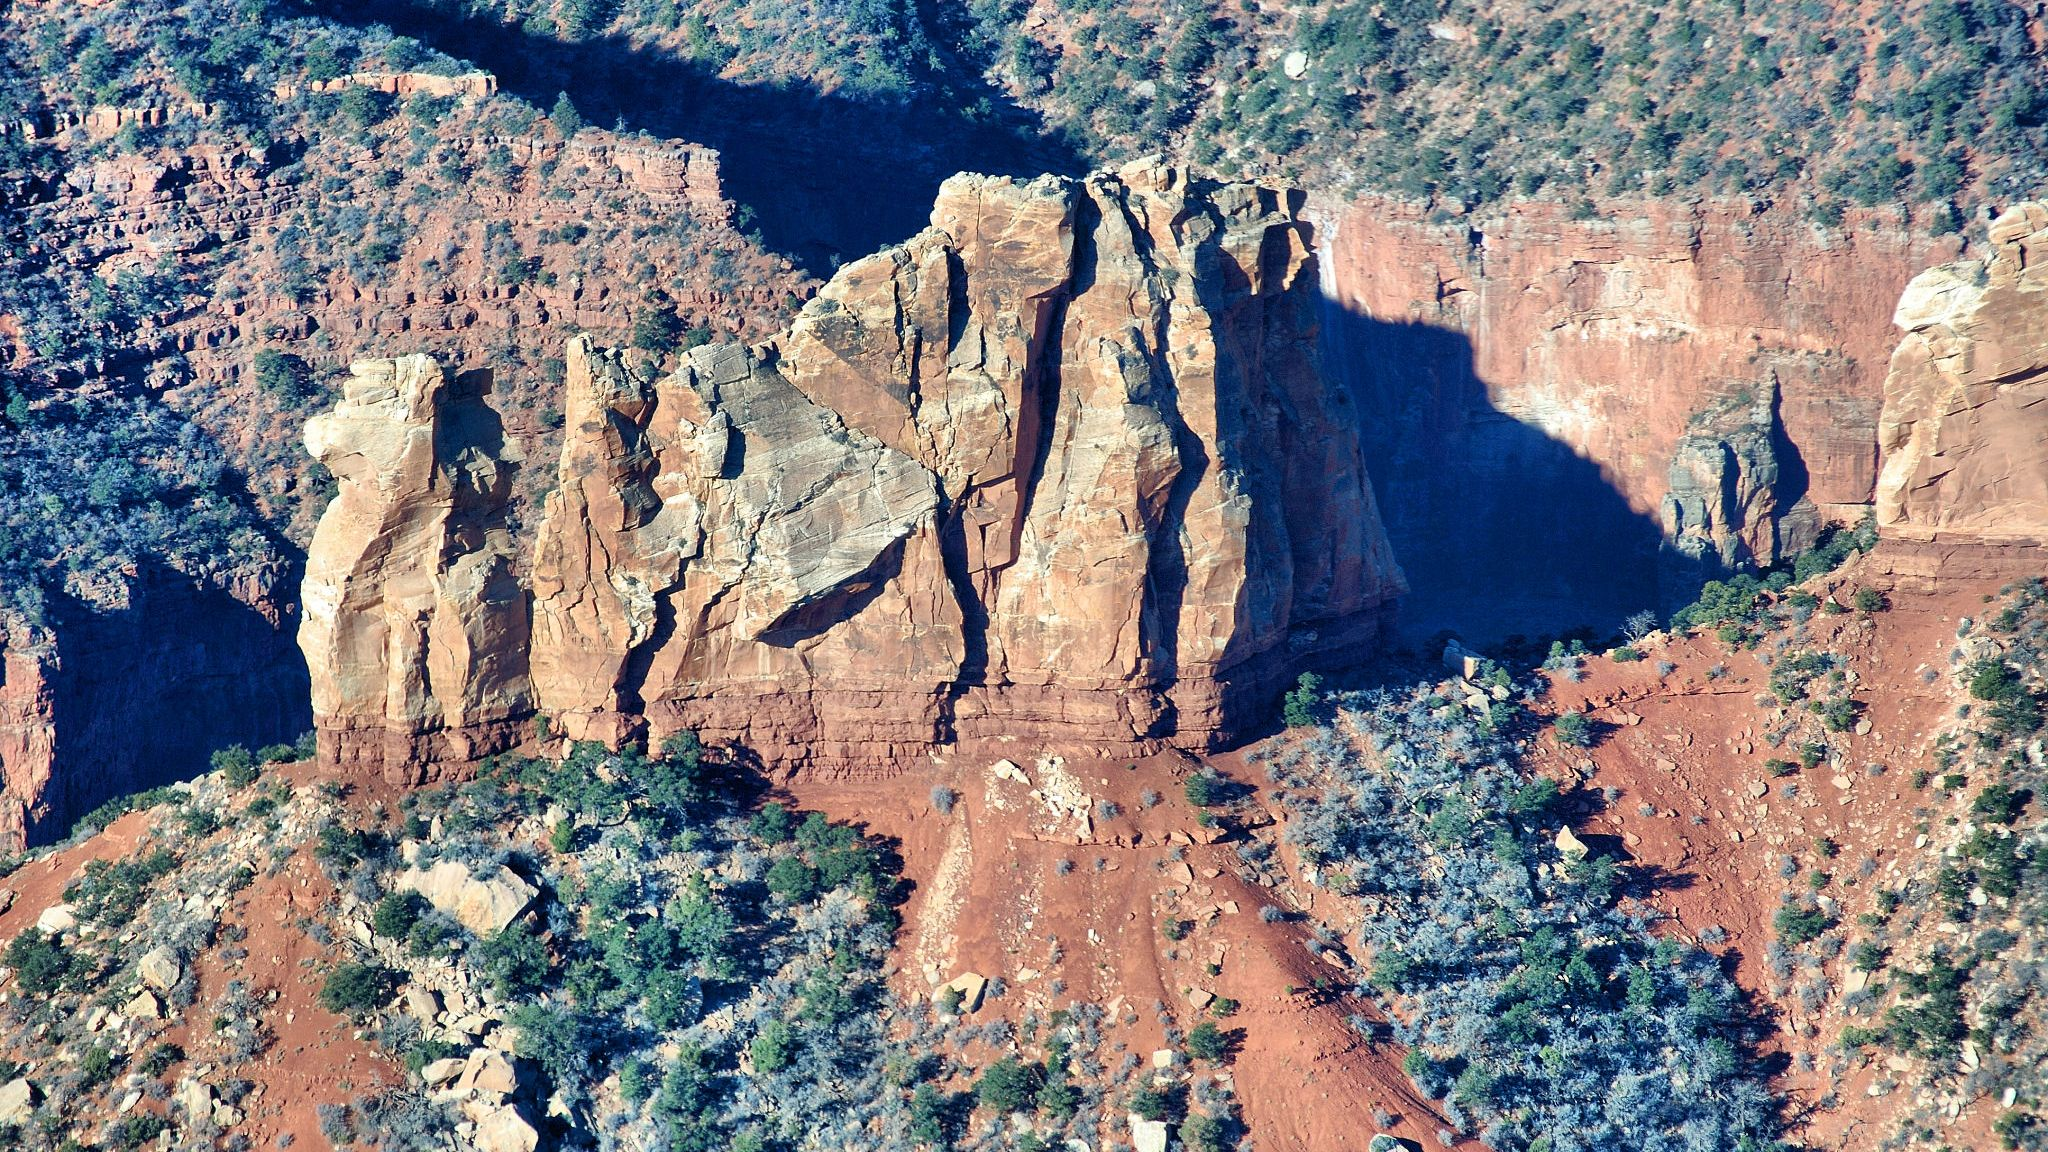 Rock formations of the Grand Canyon